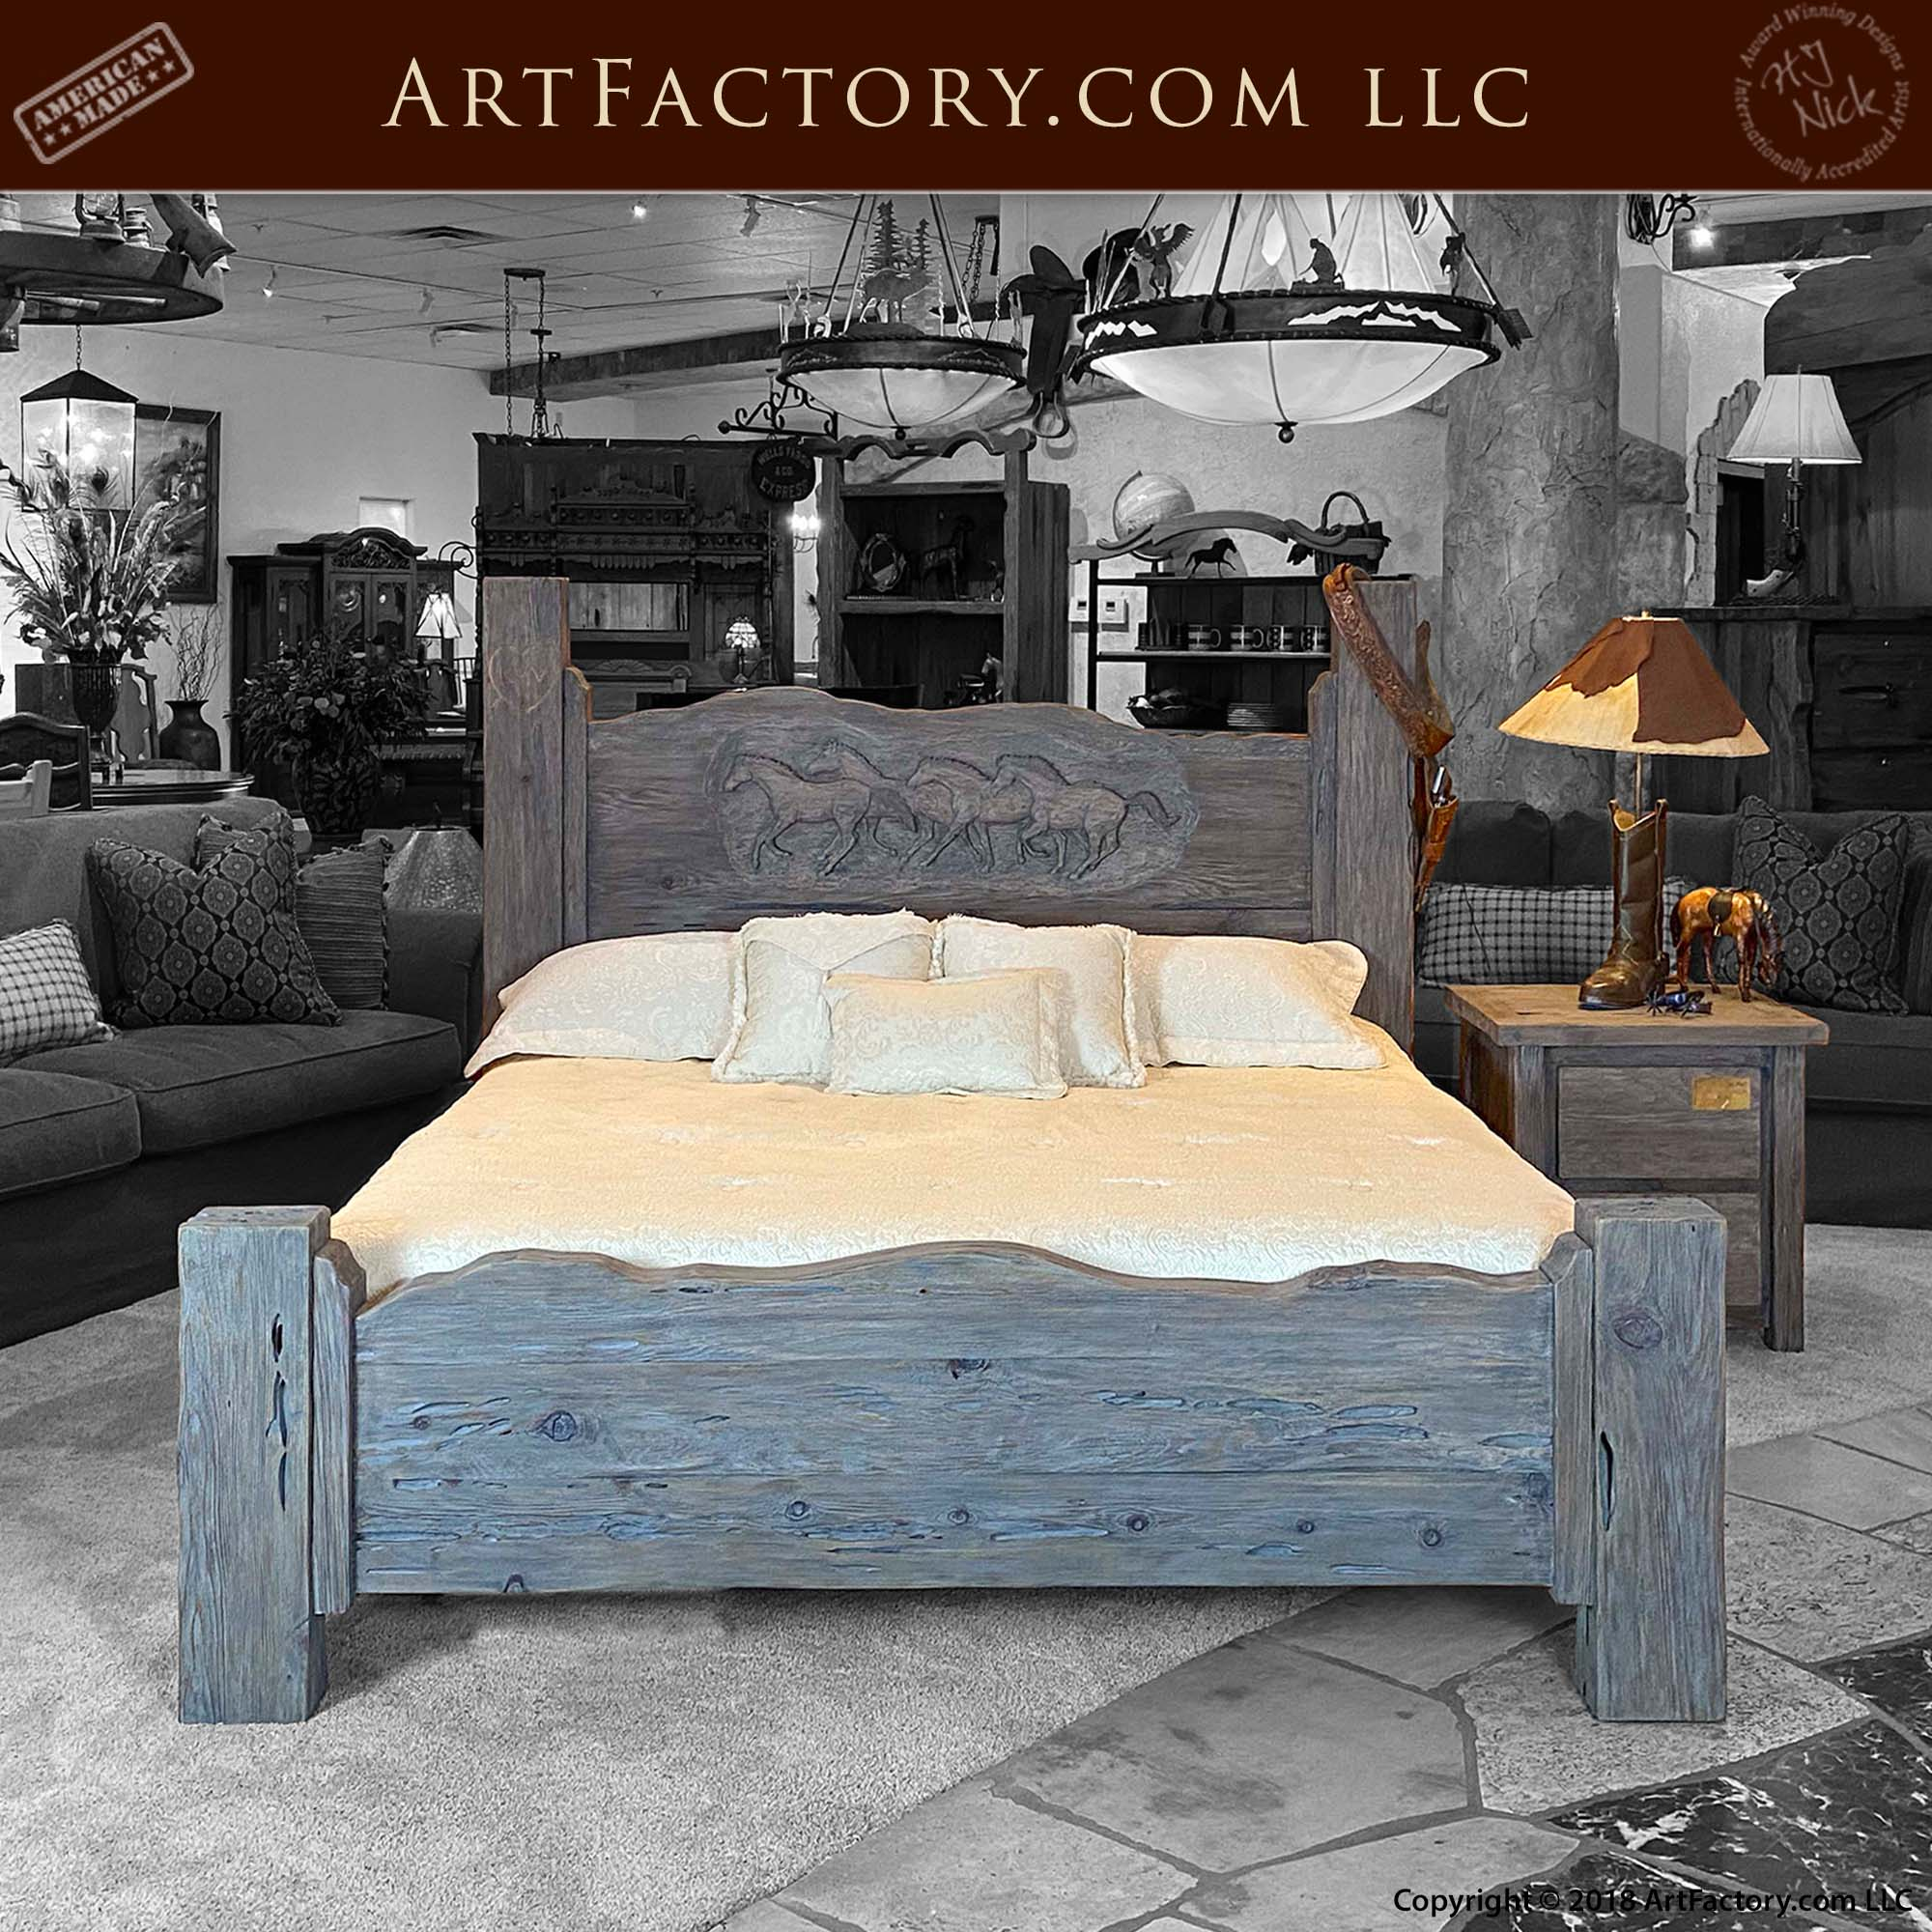 Fine Art Western Bedroom Set